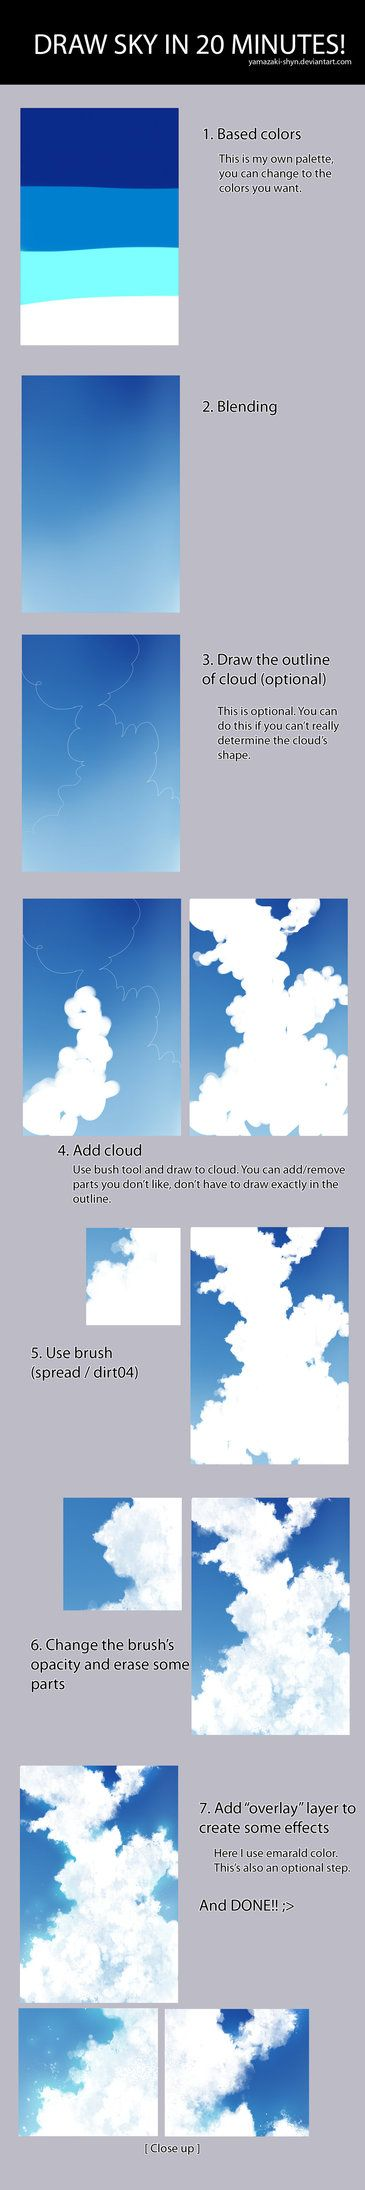 Tutorial How To Draw Sky In 20 Minutes Sai Drawing Sky Digital Art Tutorial Digital Painting Tutorials